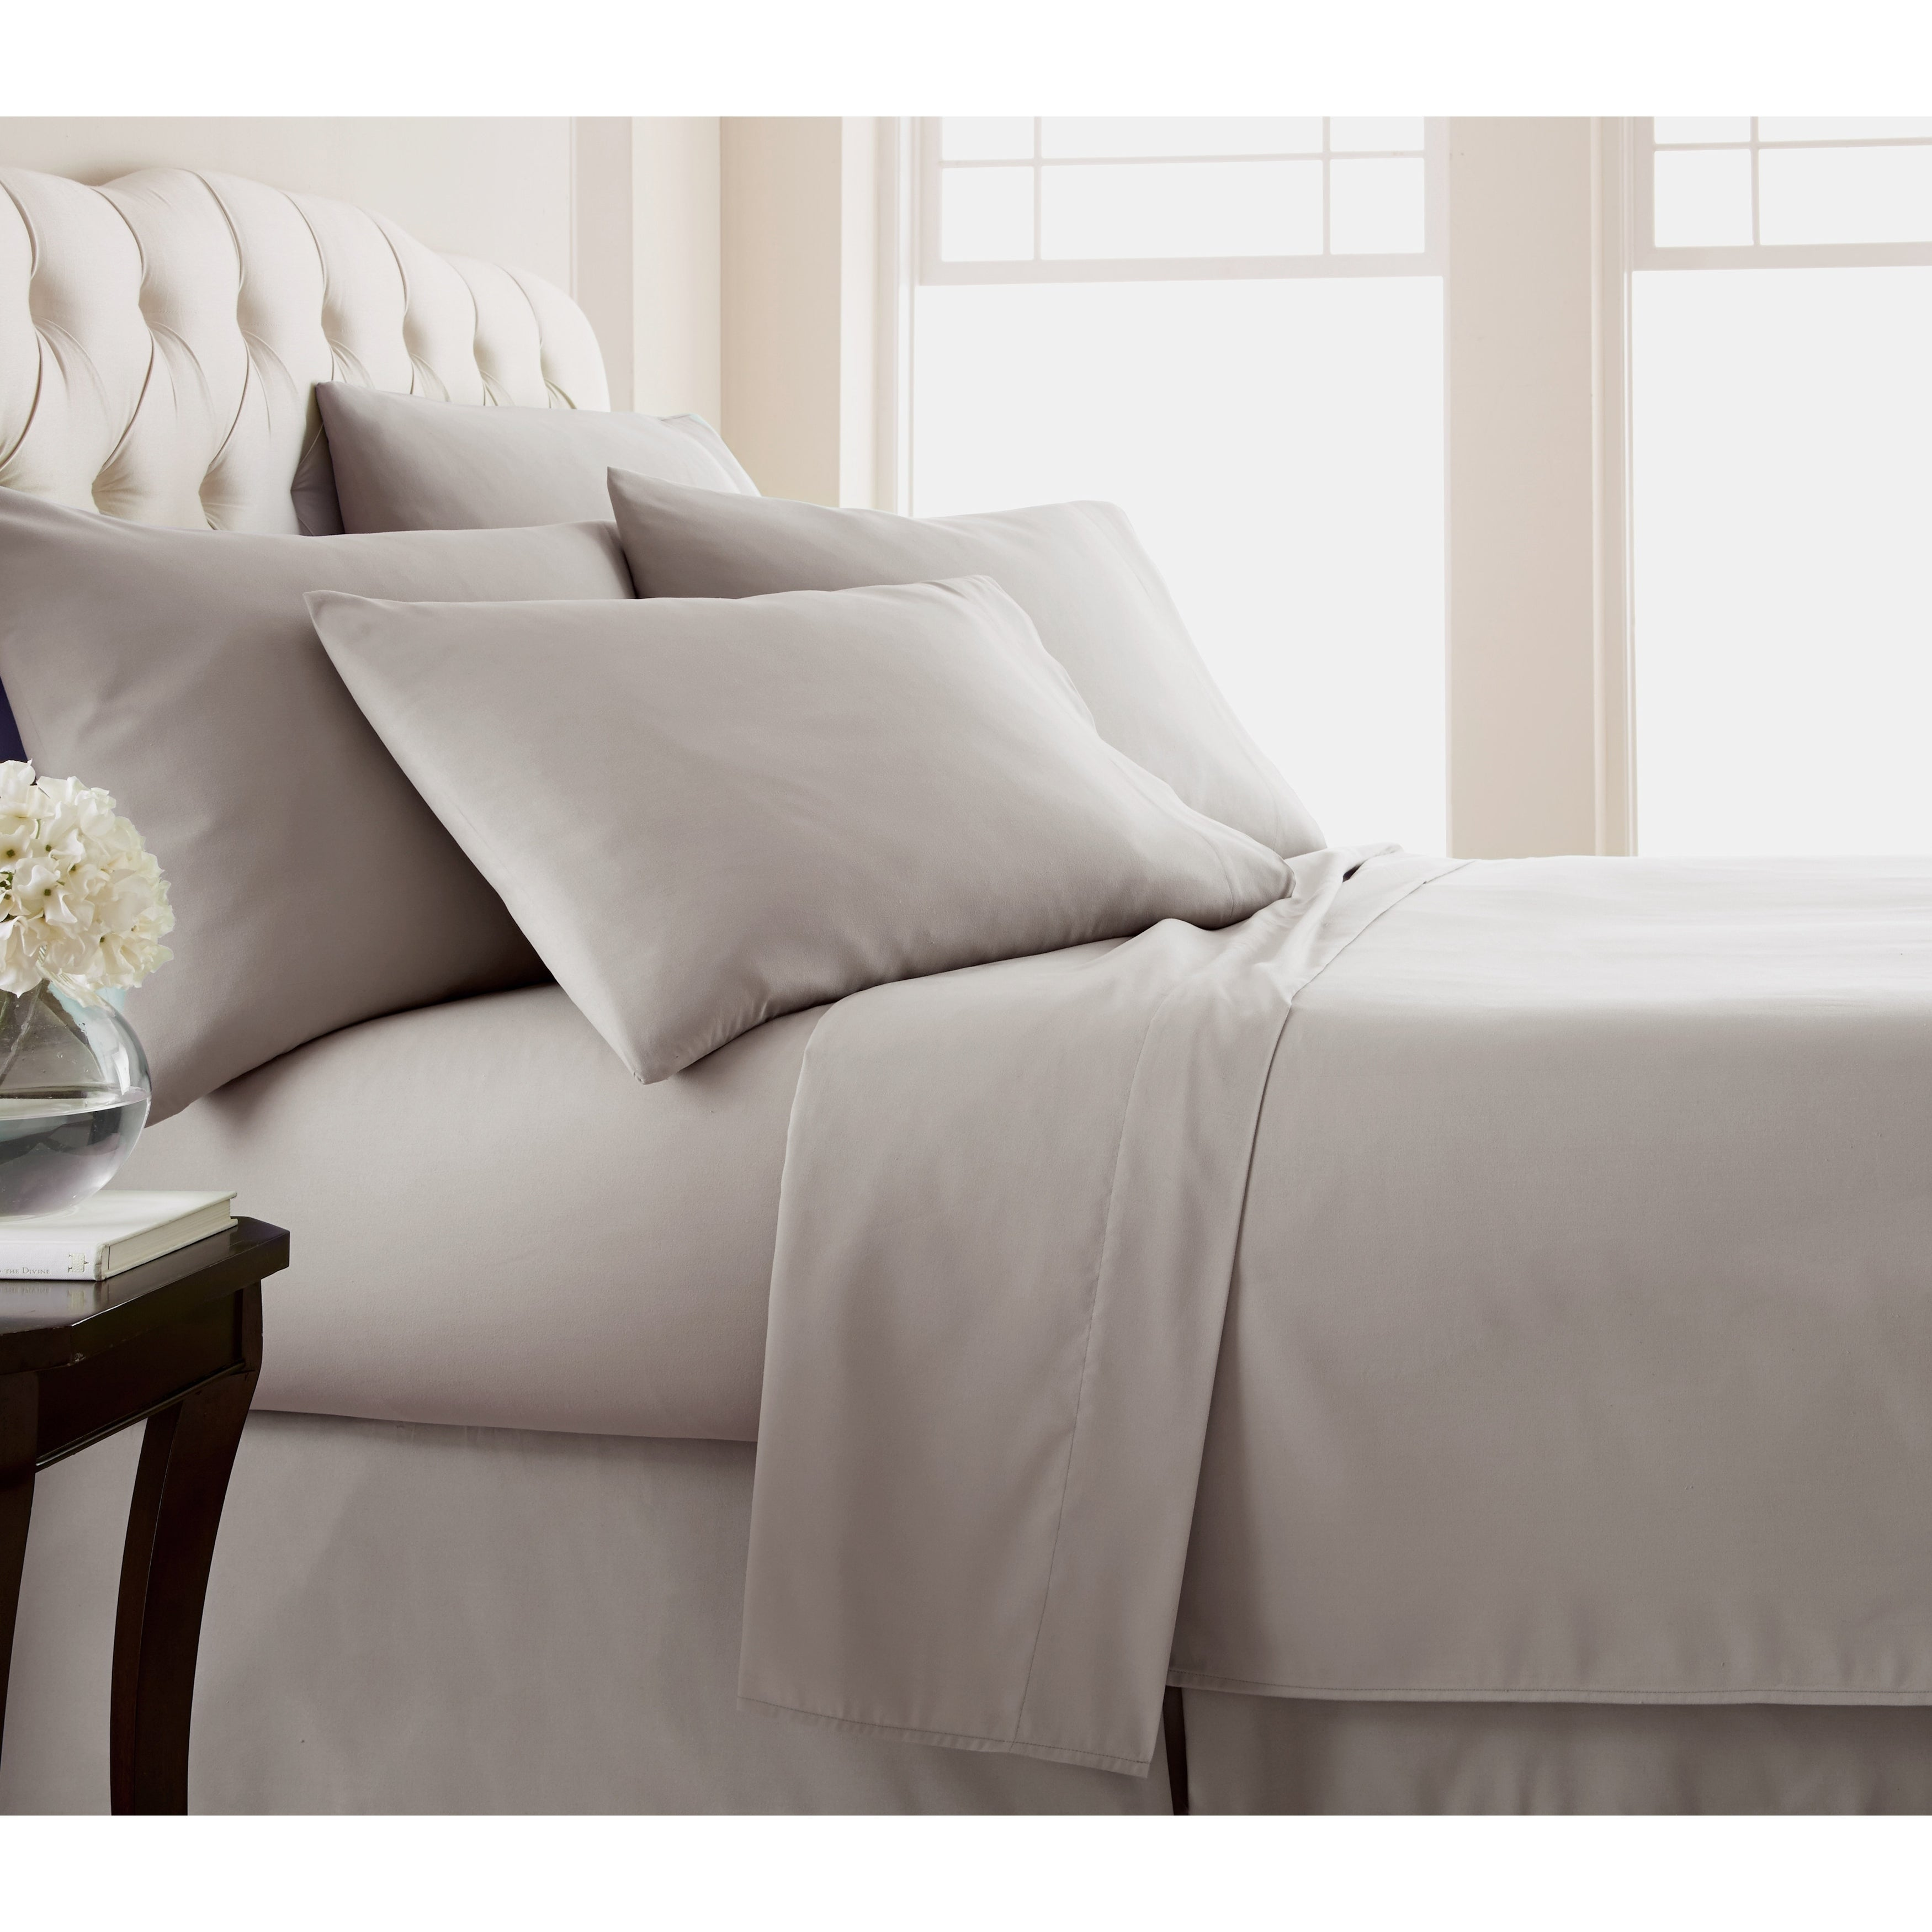 Adjule Mattress Split King Sheet Set Extra Soft And Comfortable On Free Shipping Today 22379480